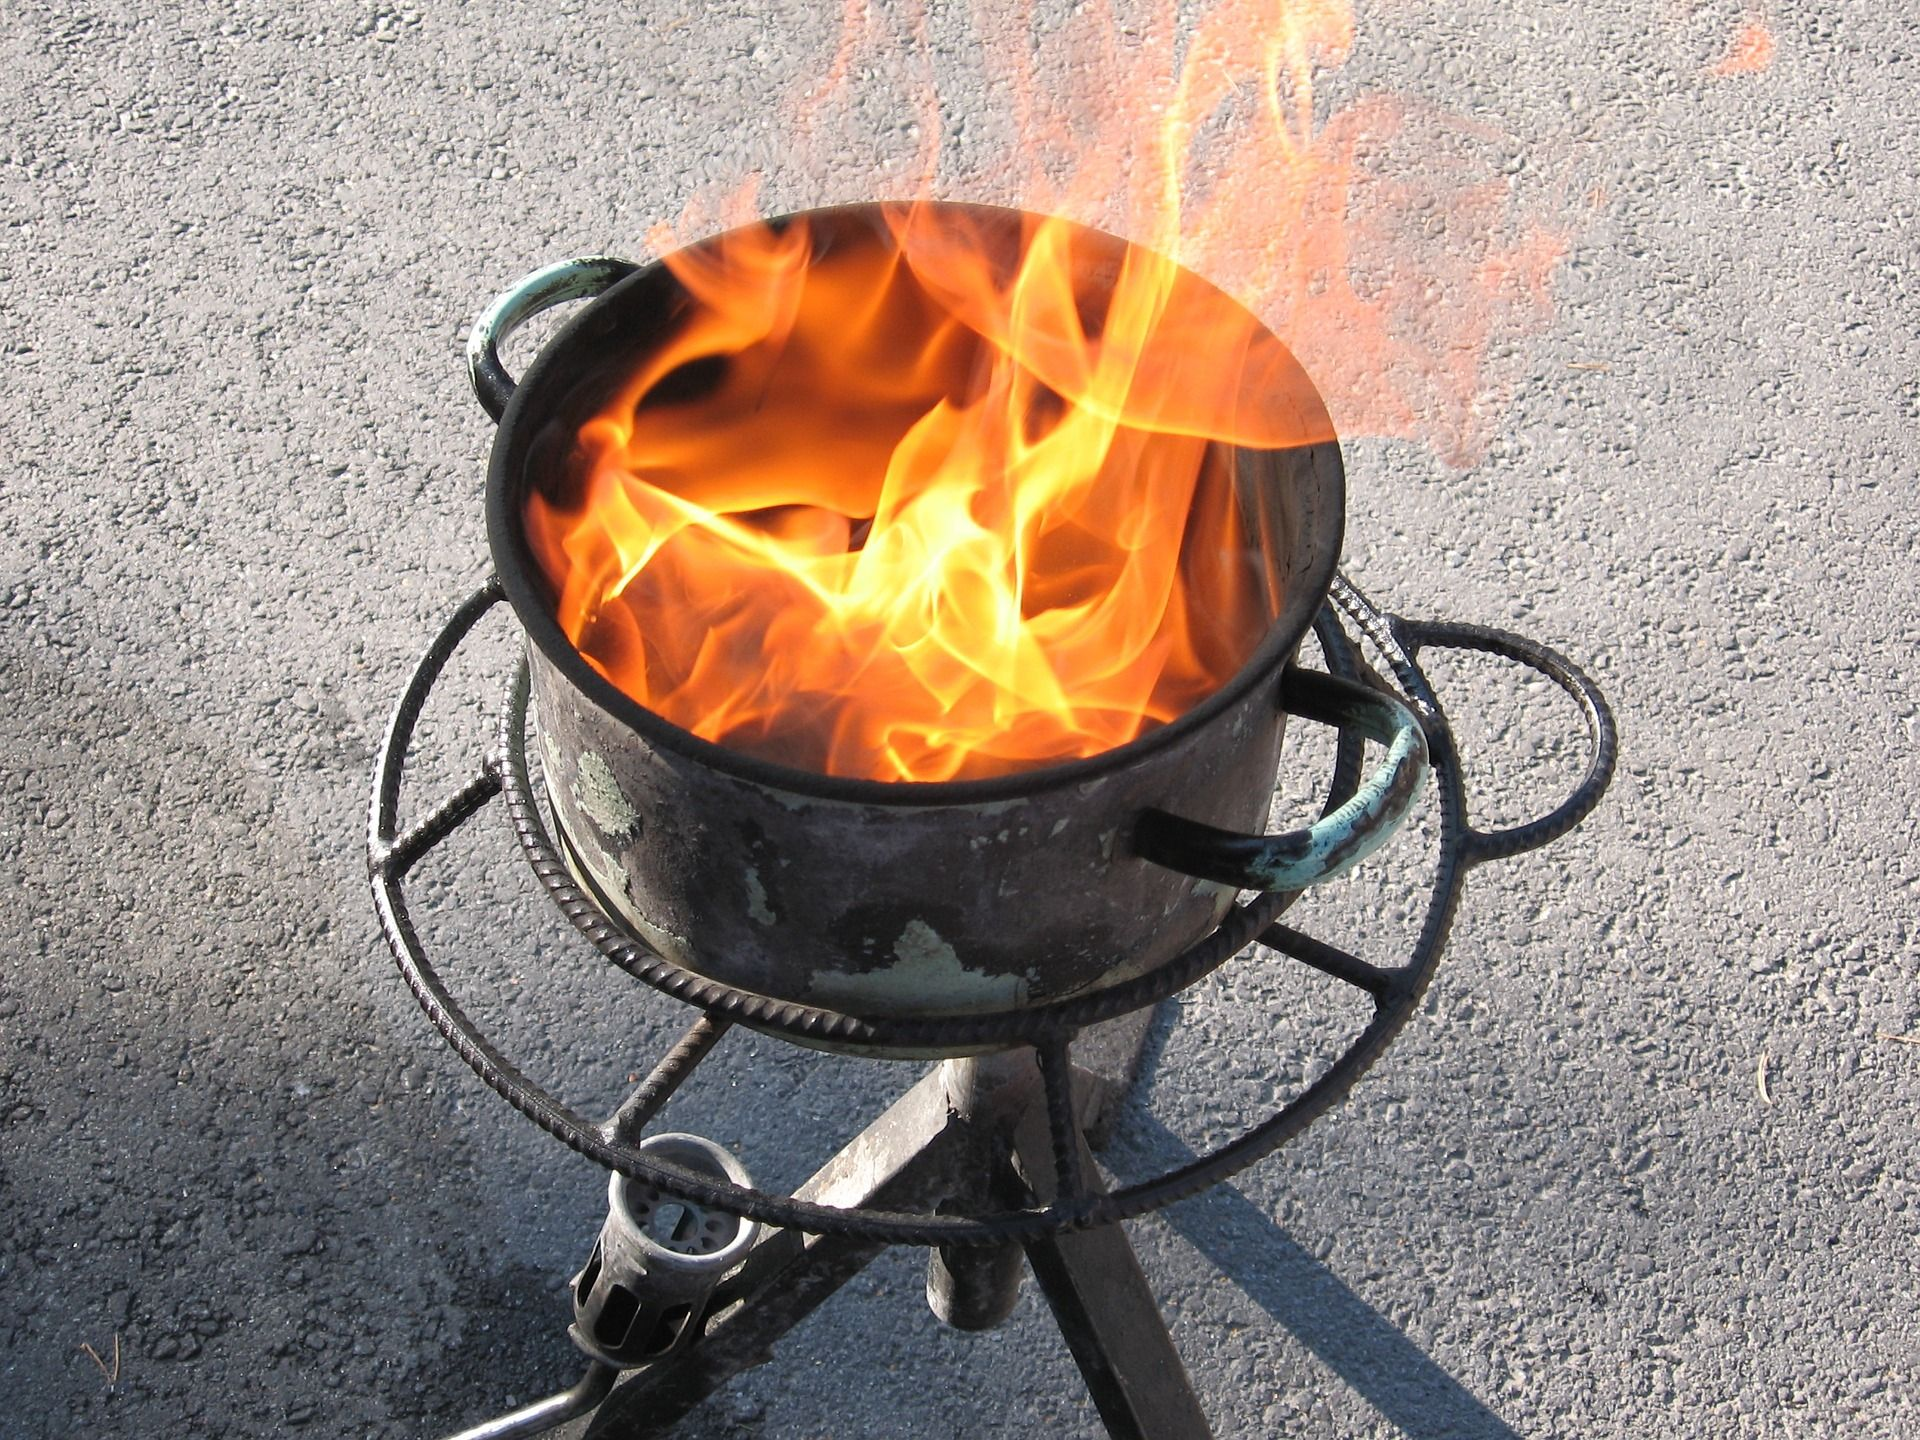 How To Prevent And Put Out A Grease Fire Fire Survival Survival Guide